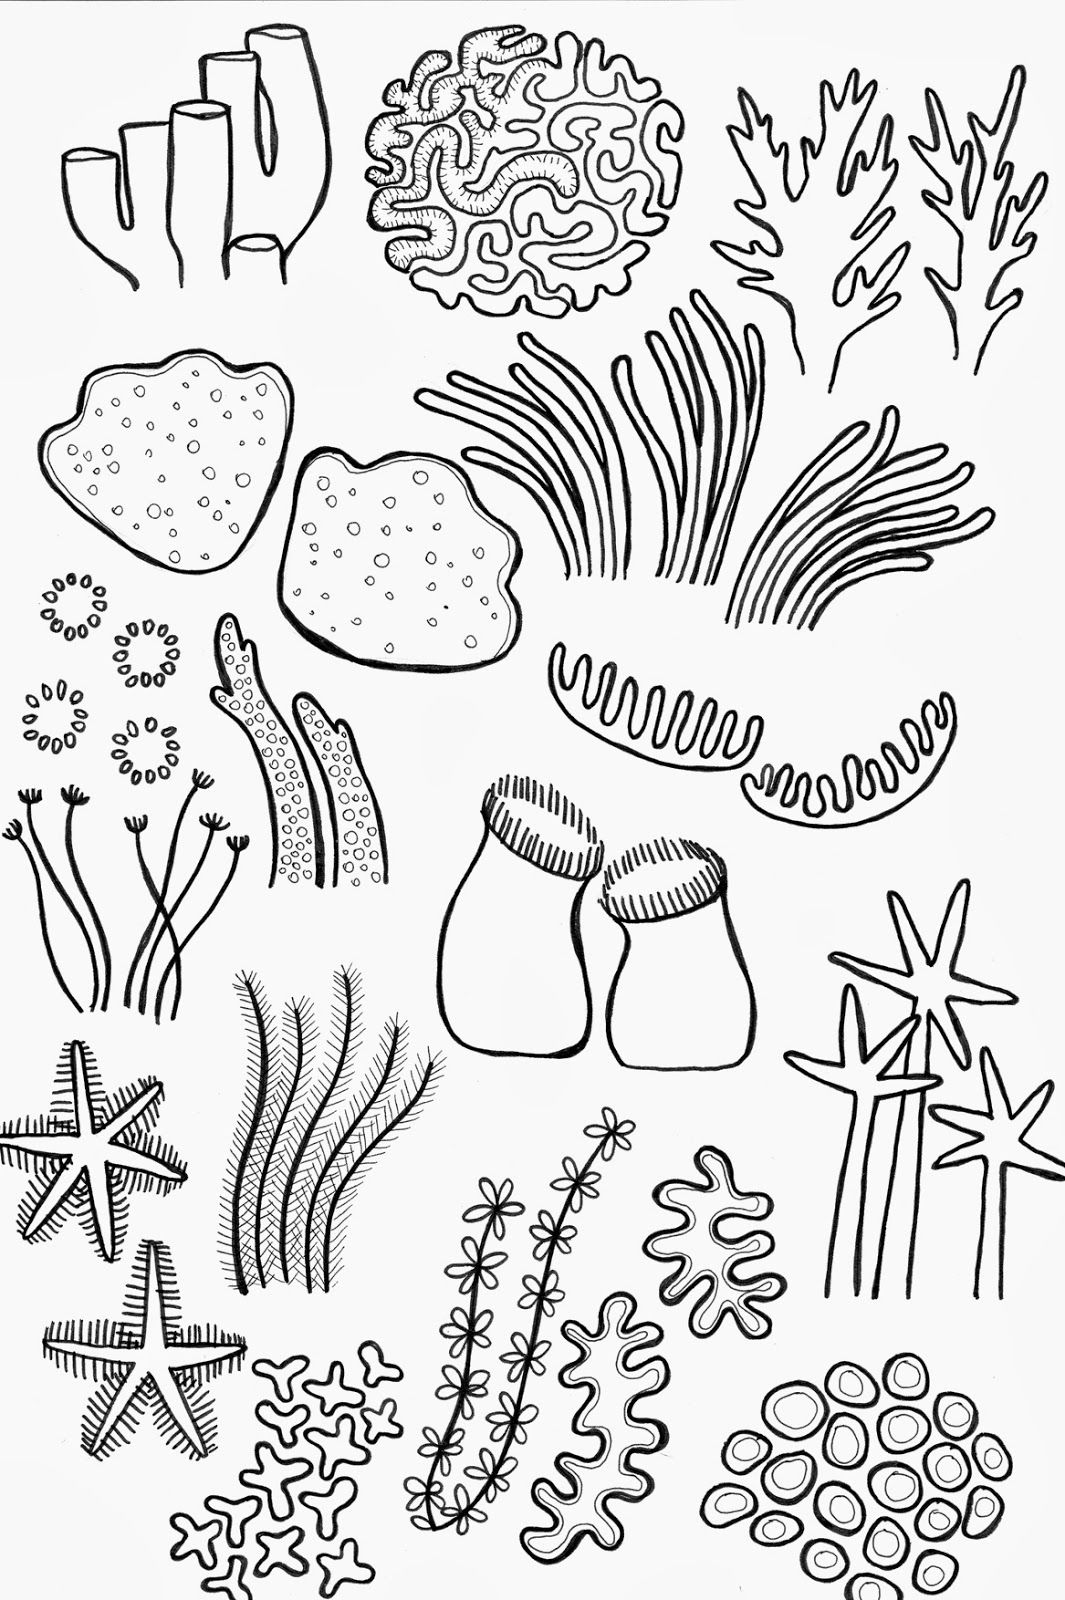 underwater scene printables. hors of fun with children via melssa ... - Coral Reef Coloring Pages Kids